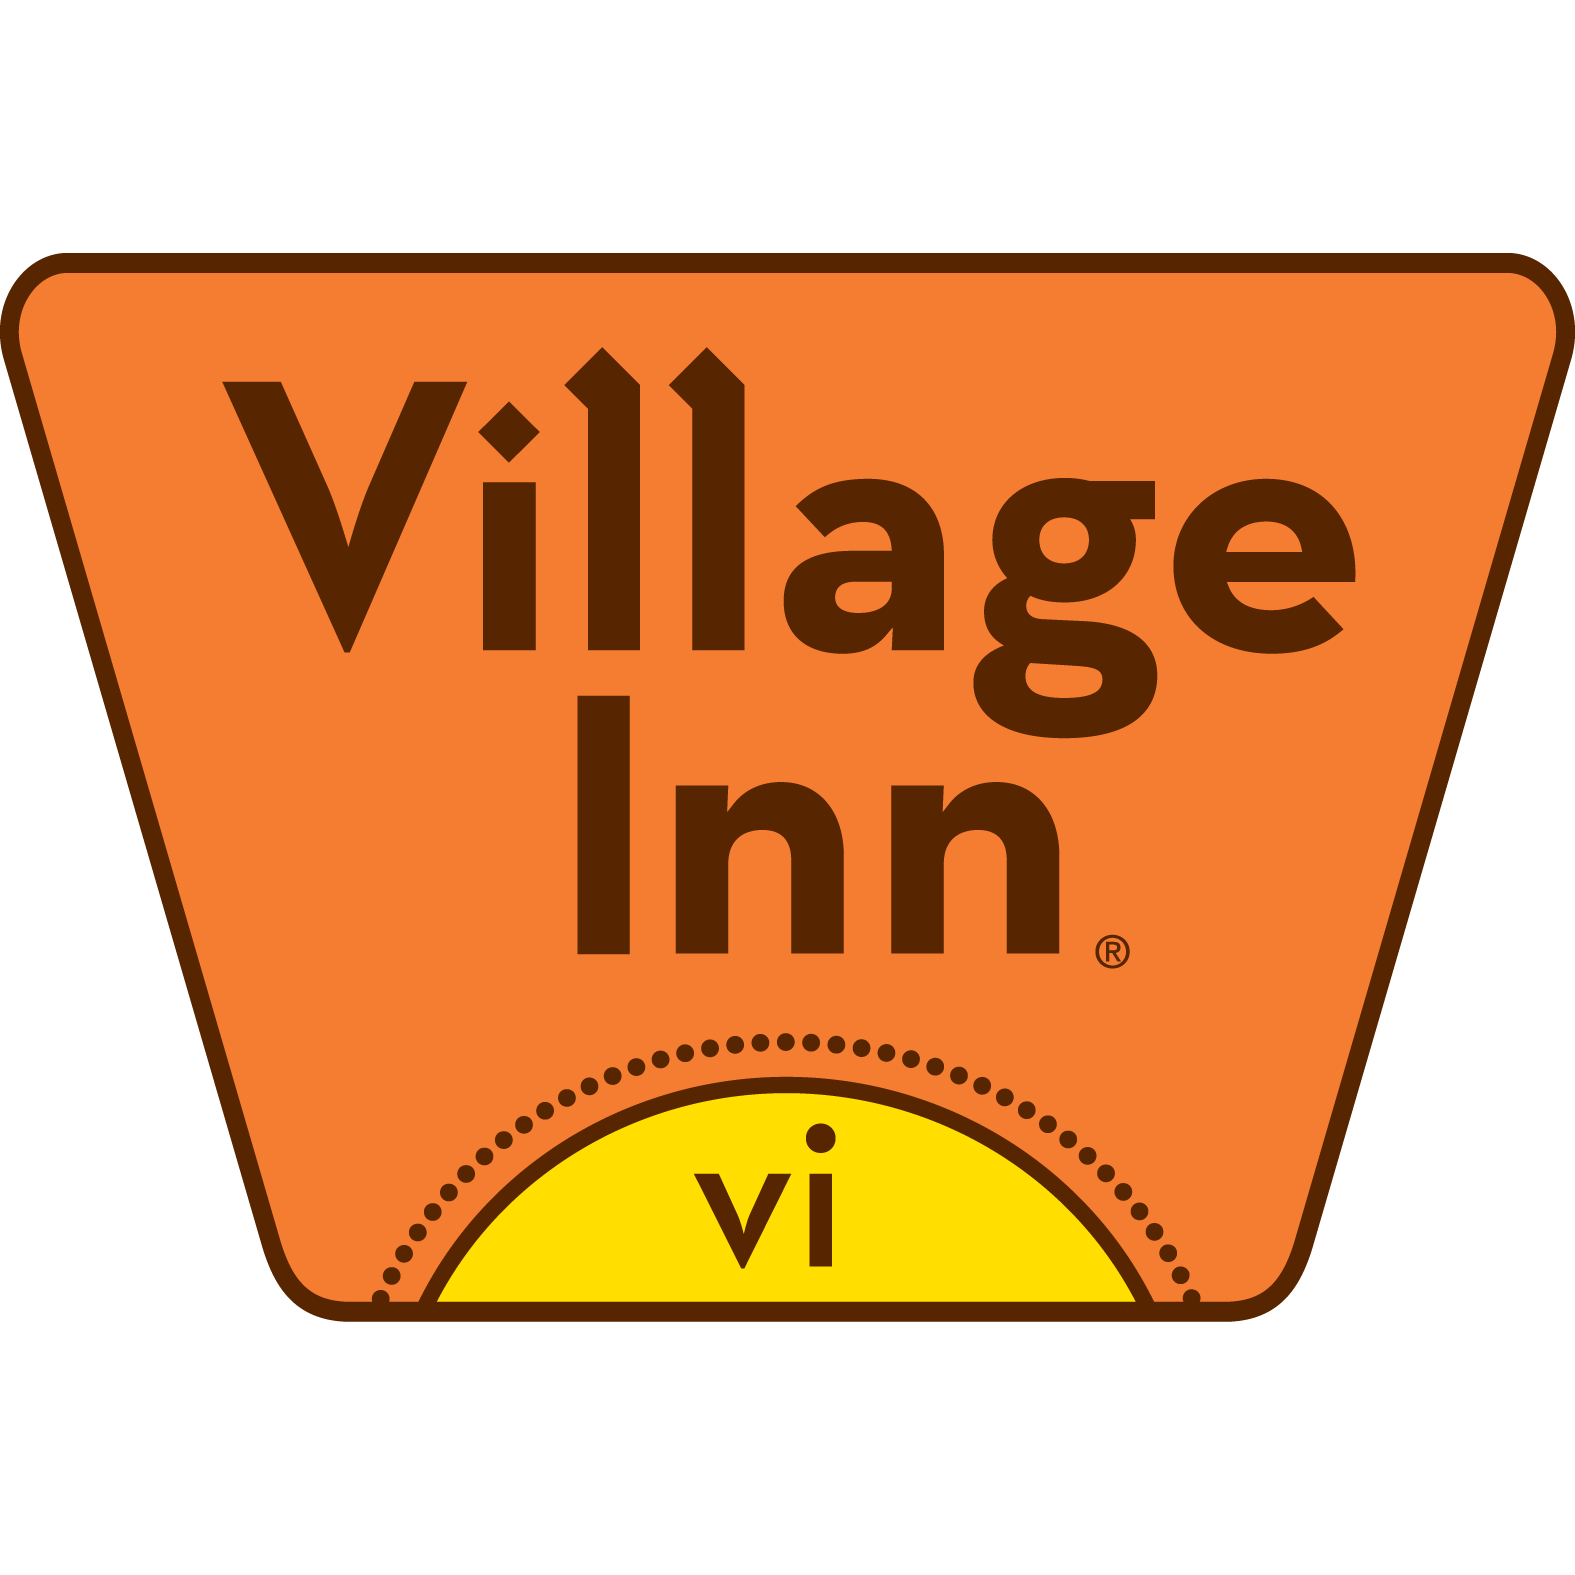 Village Inn - Flagstaff, AZ - Restaurants